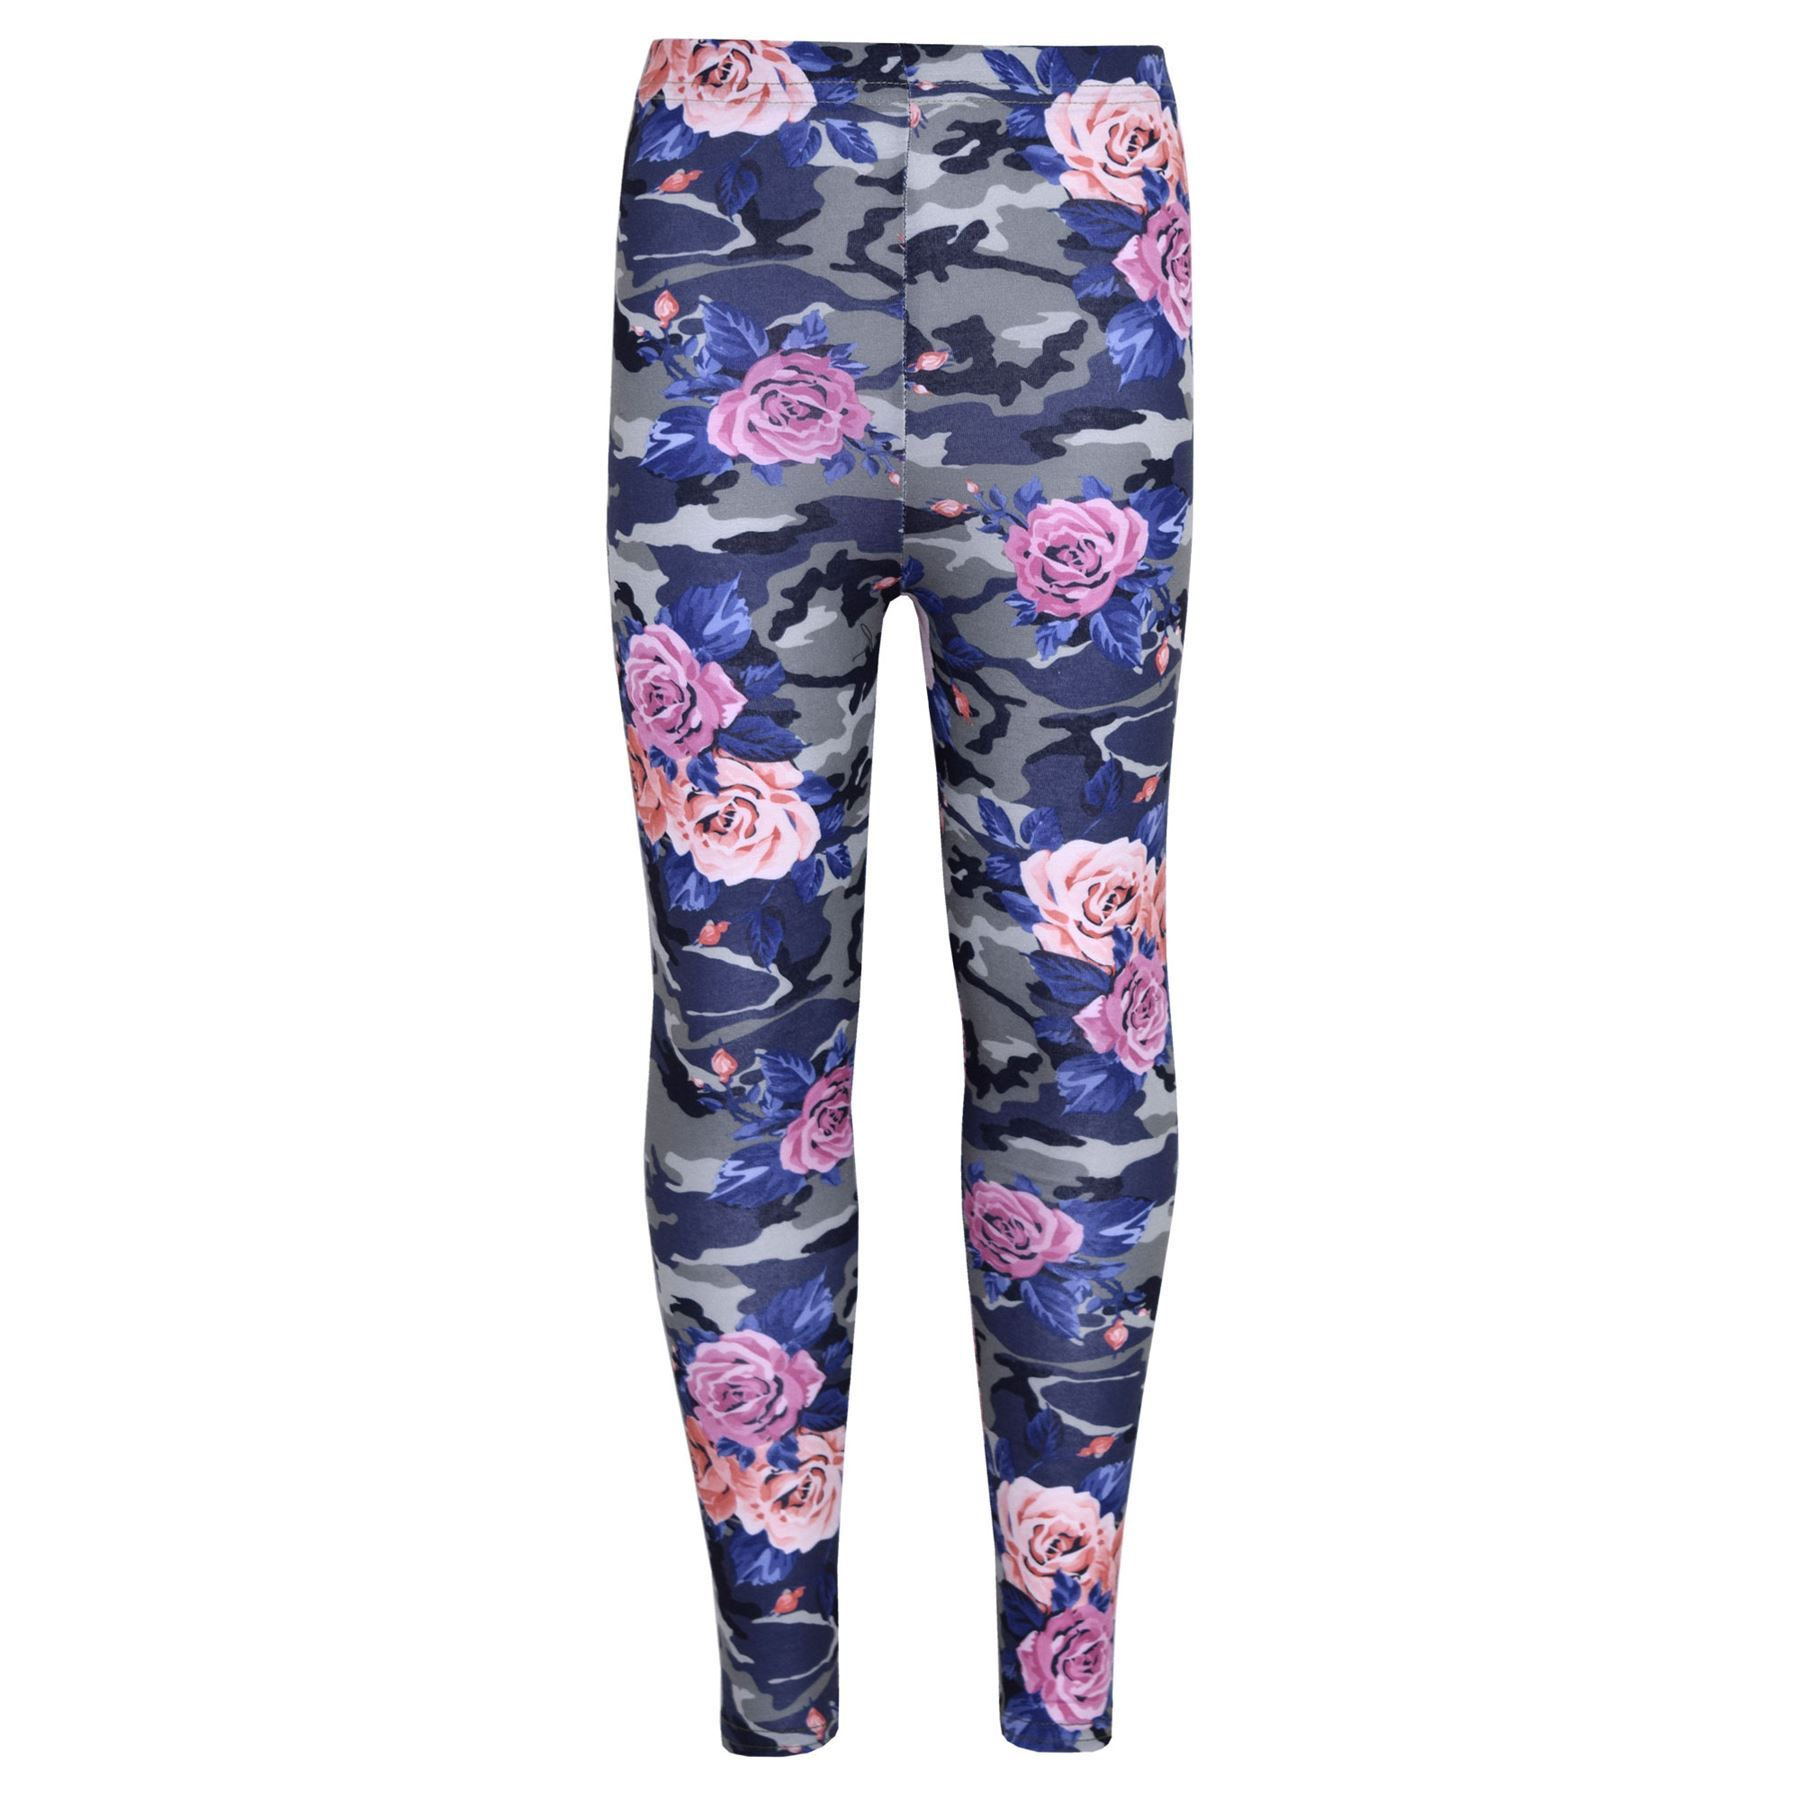 Leggings Outfit Party Girls Legging Kids Camo Floral Print Party Dance Fashion